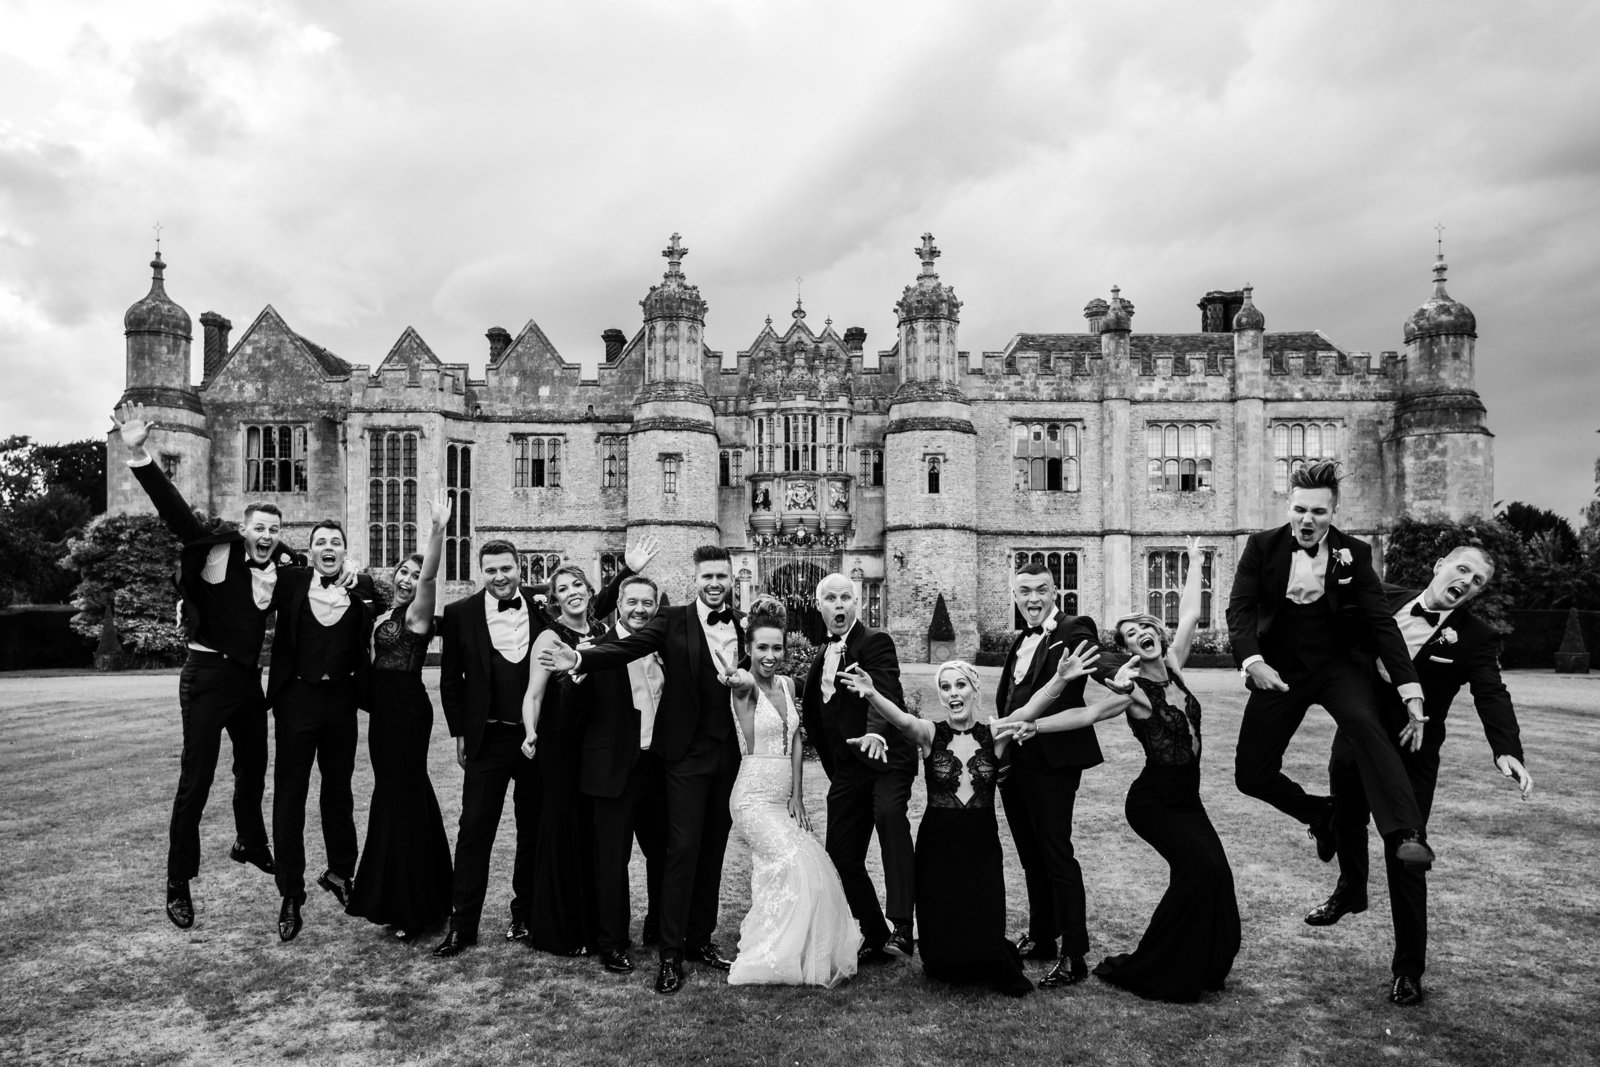 The wedding party line up and jump with enthusiasm in front of Hengrave Hall. The bridesmaids are wearing black dresses and the groomsmen in black tie.